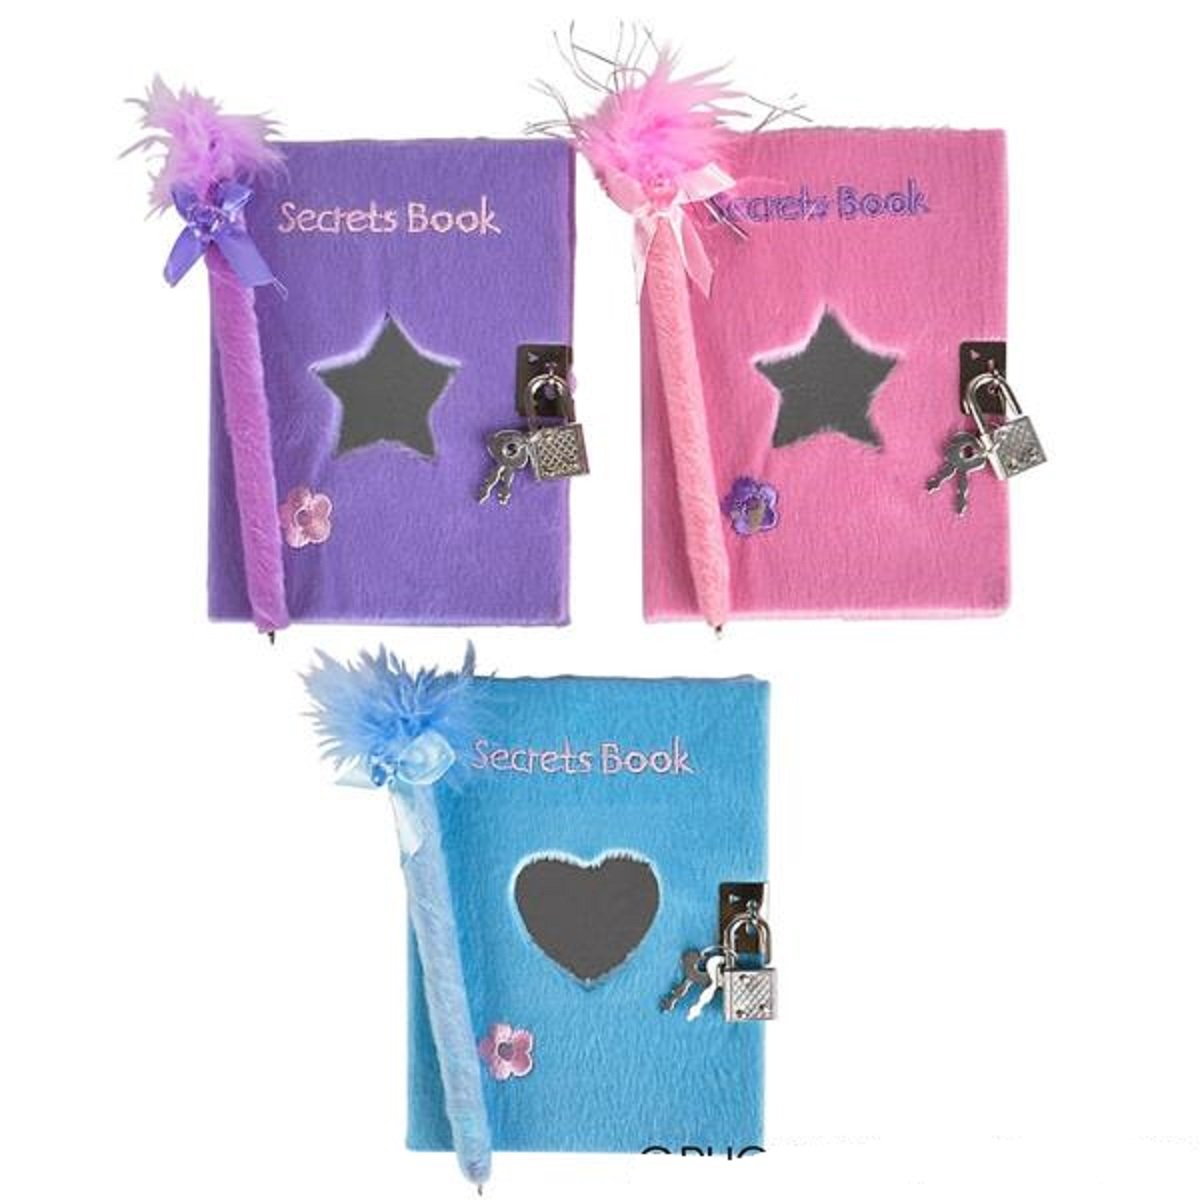 Teen Girls Locking Diaries / Heart Journals With Mirror & Feather Boa Pen - 3 Pack Assortment